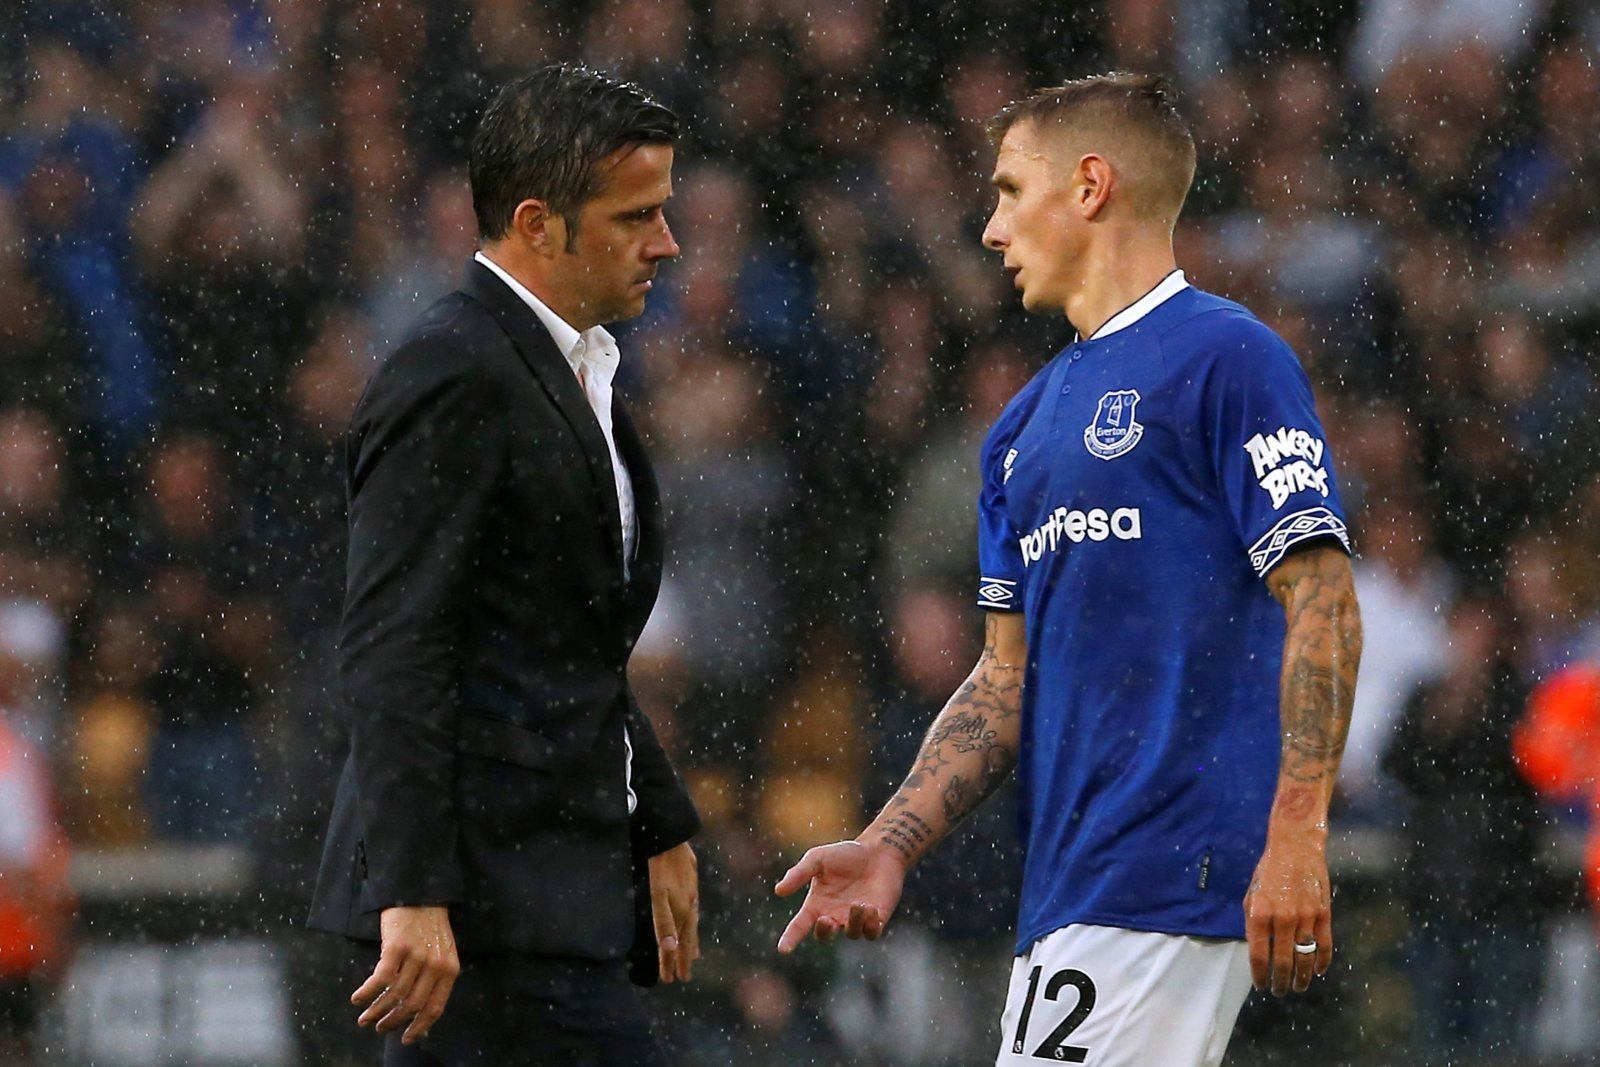 Everton fans are so right: Having Digne around is great for the club